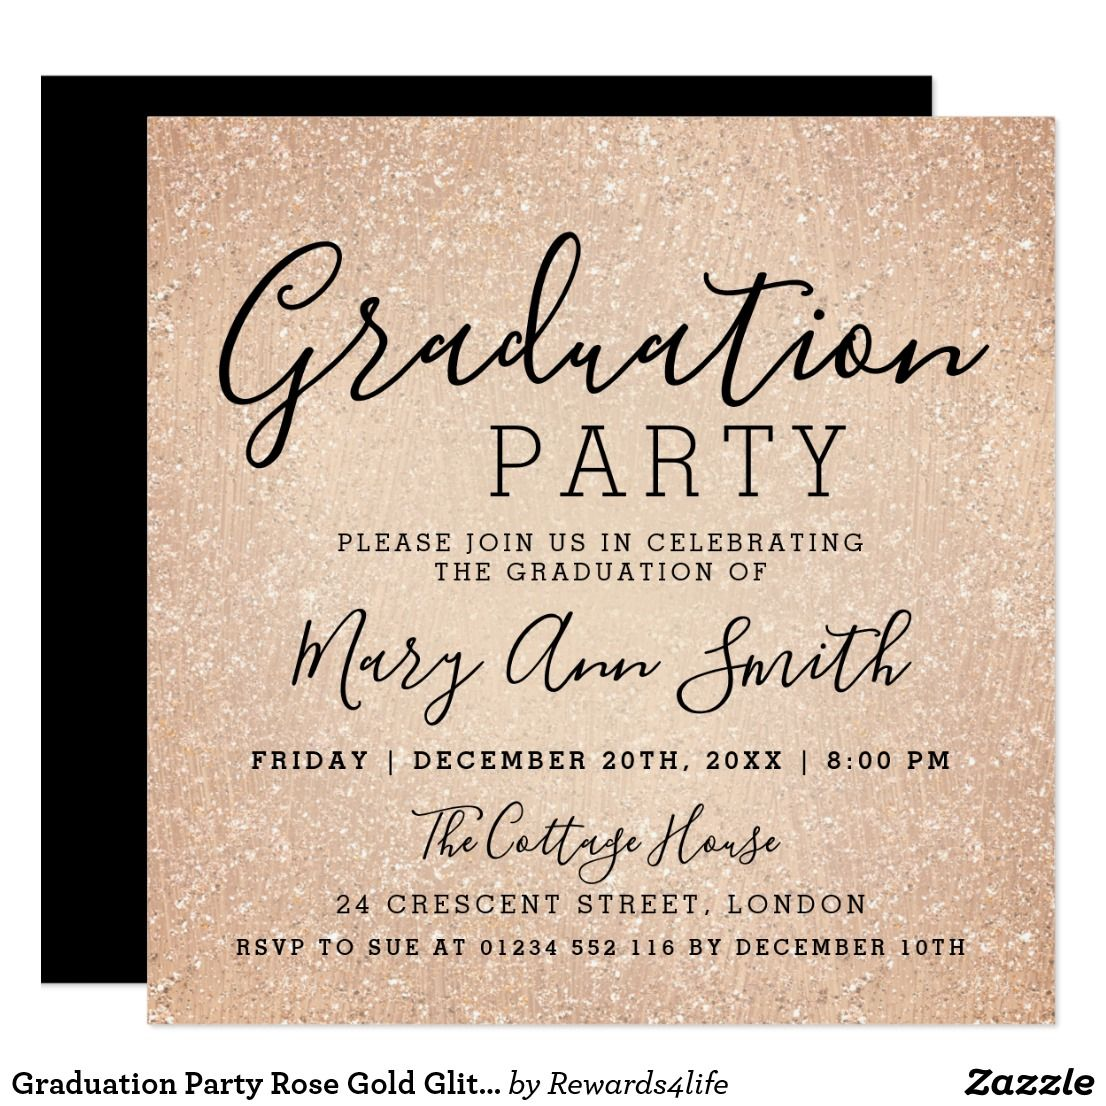 graduation party rose gold glitter paint card elegant modern rose gold glitter look paint graduation party invitation template easy to personalize